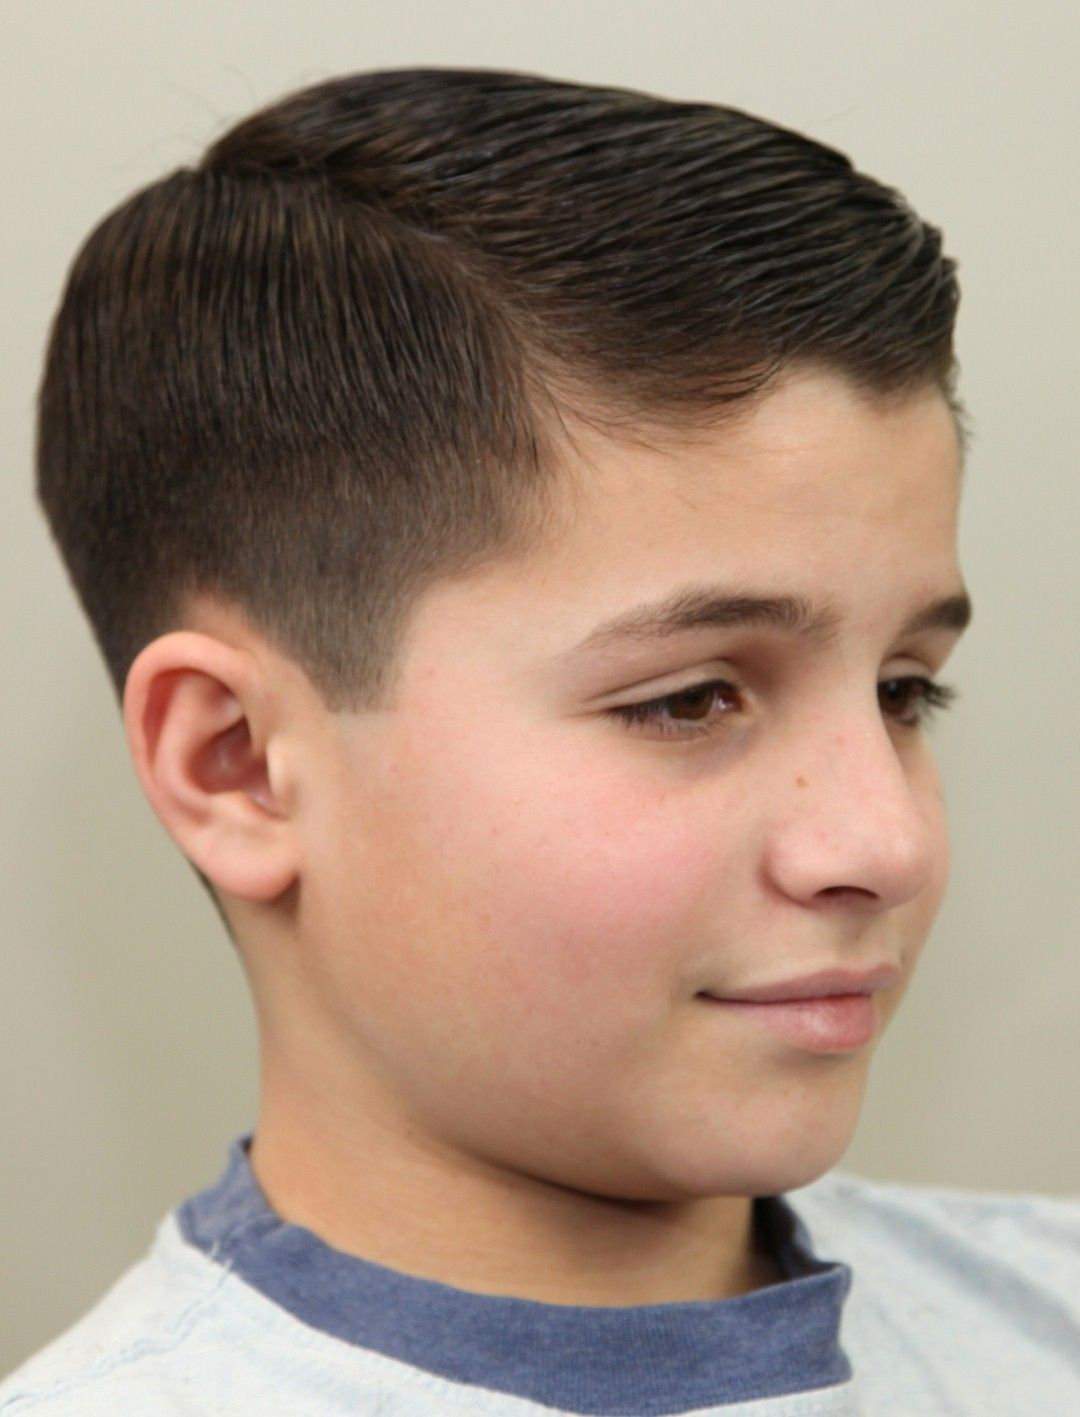 Pleasing 1000 Images About Boy Haircuts On Pinterest Boys Combover And Hairstyle Inspiration Daily Dogsangcom